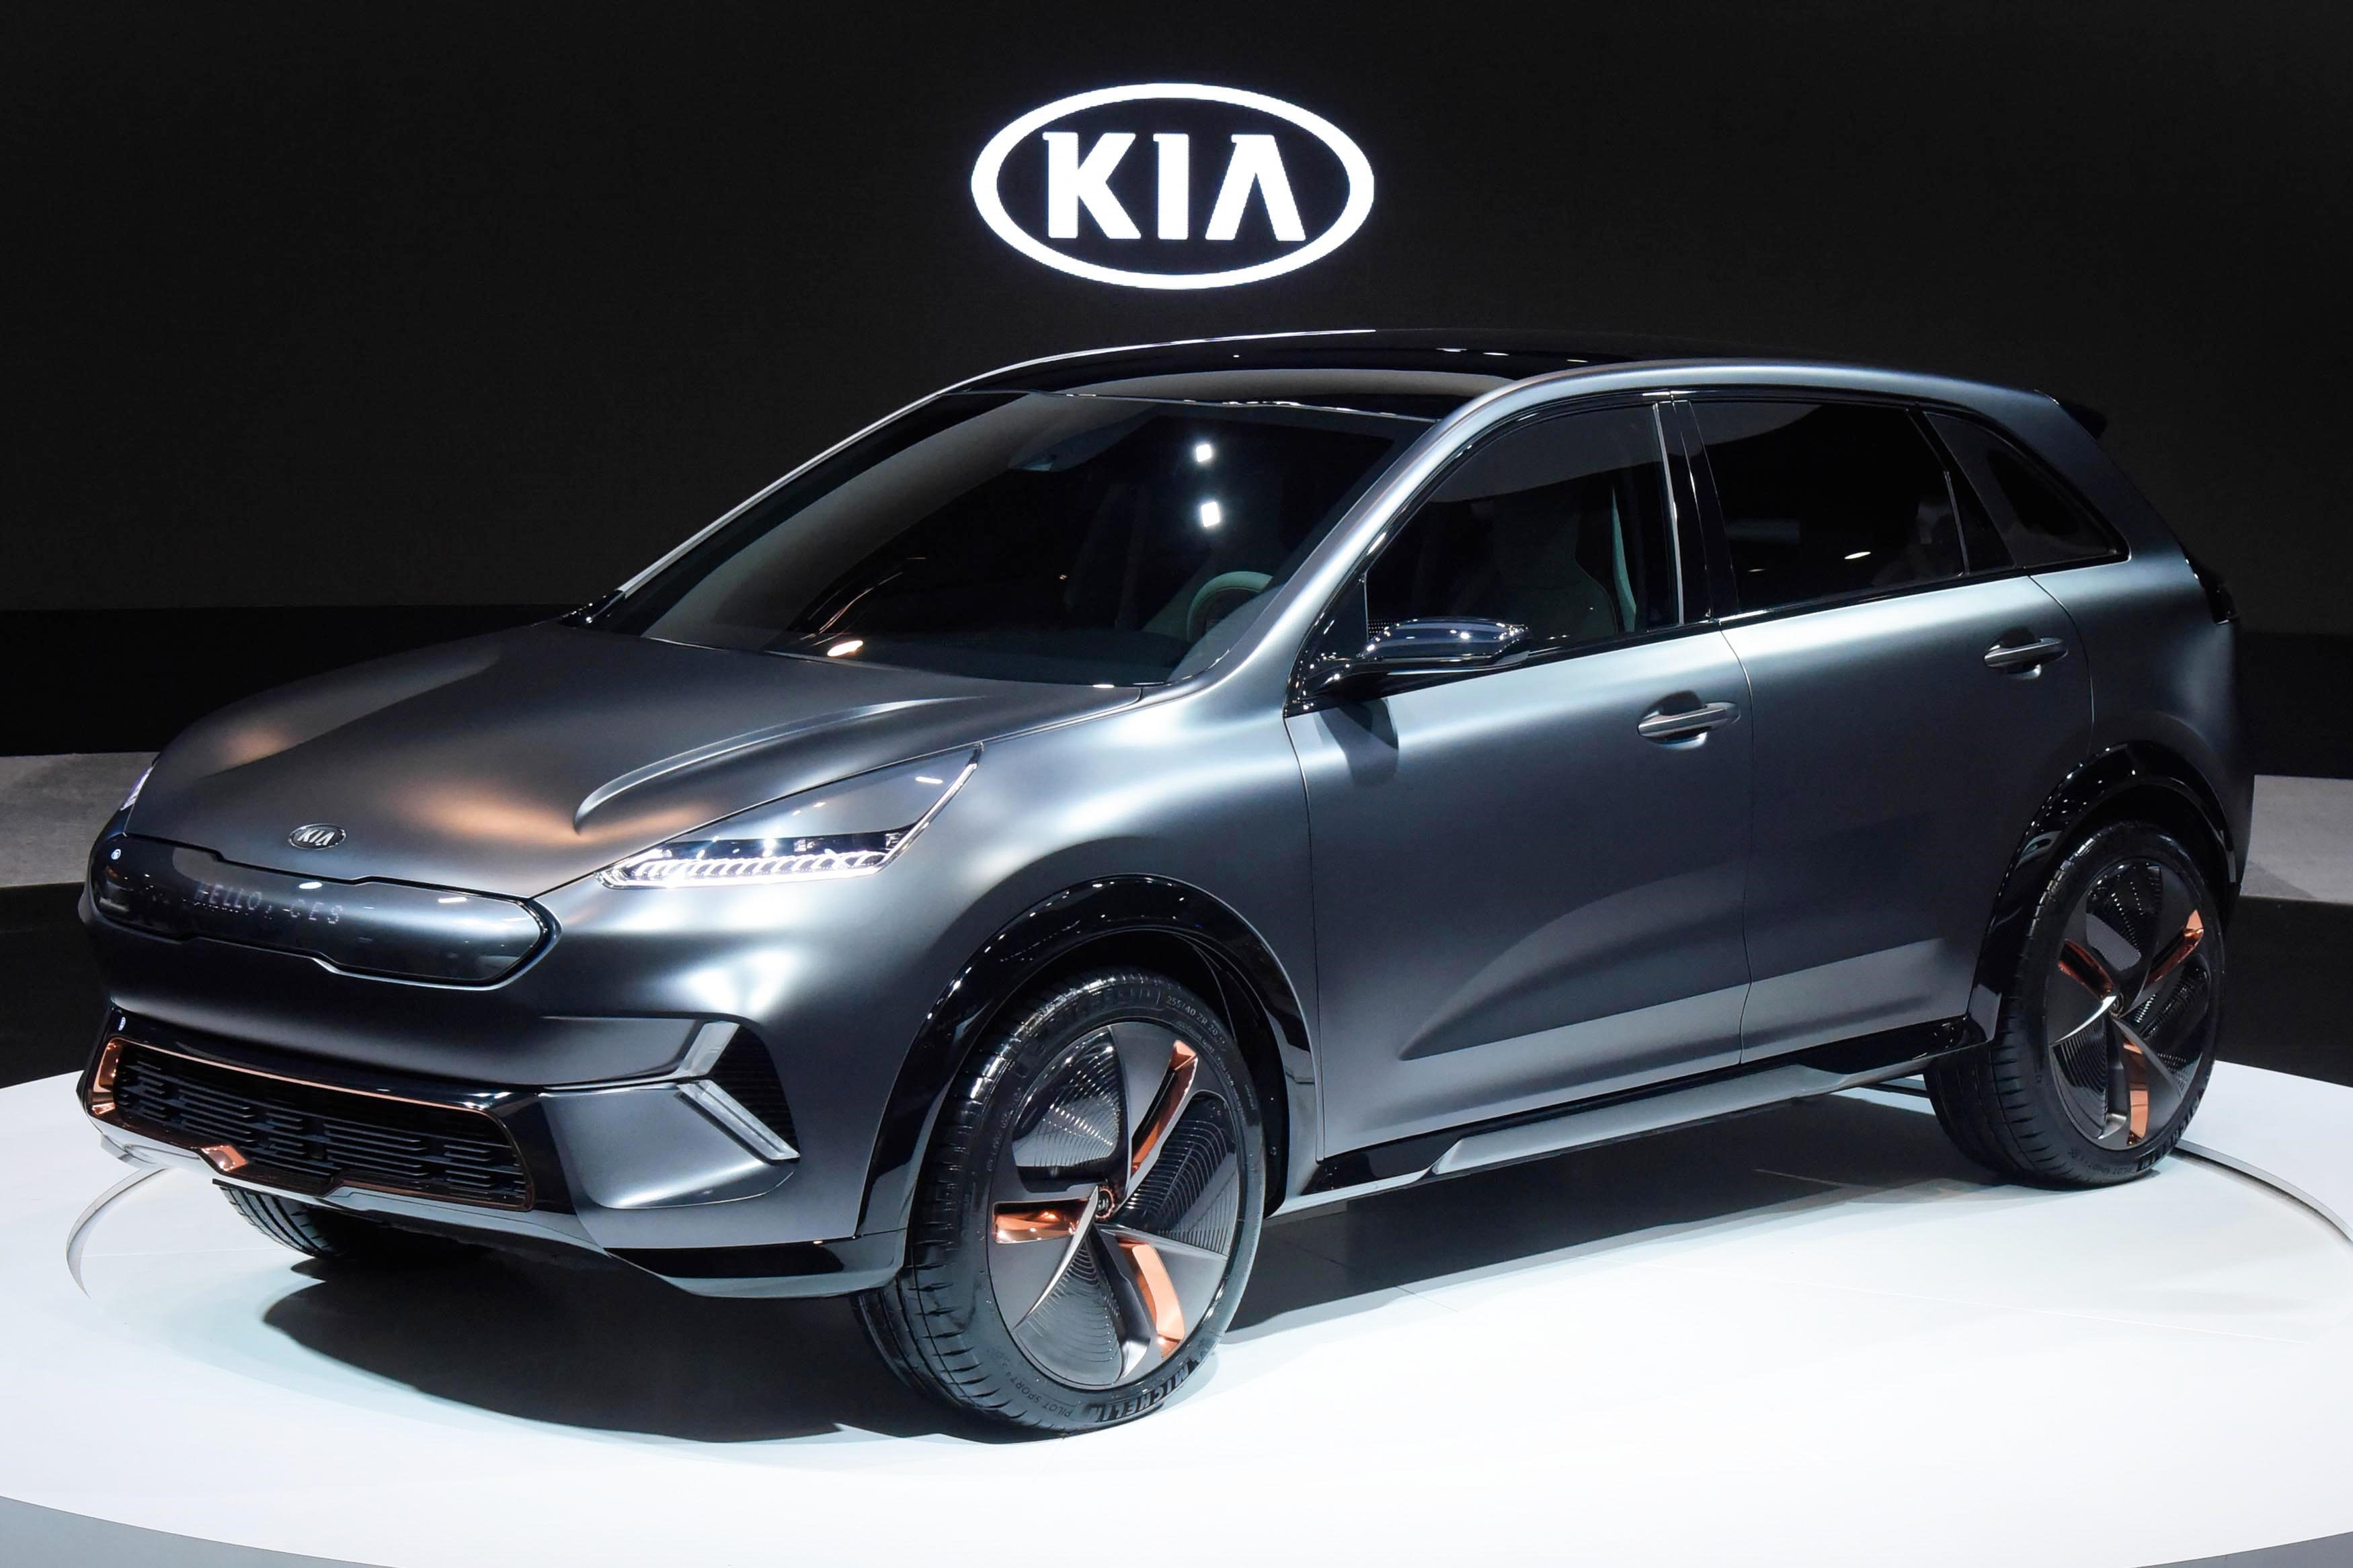 Kia Niro EV Concept Unveiled at CES in Las Vegas